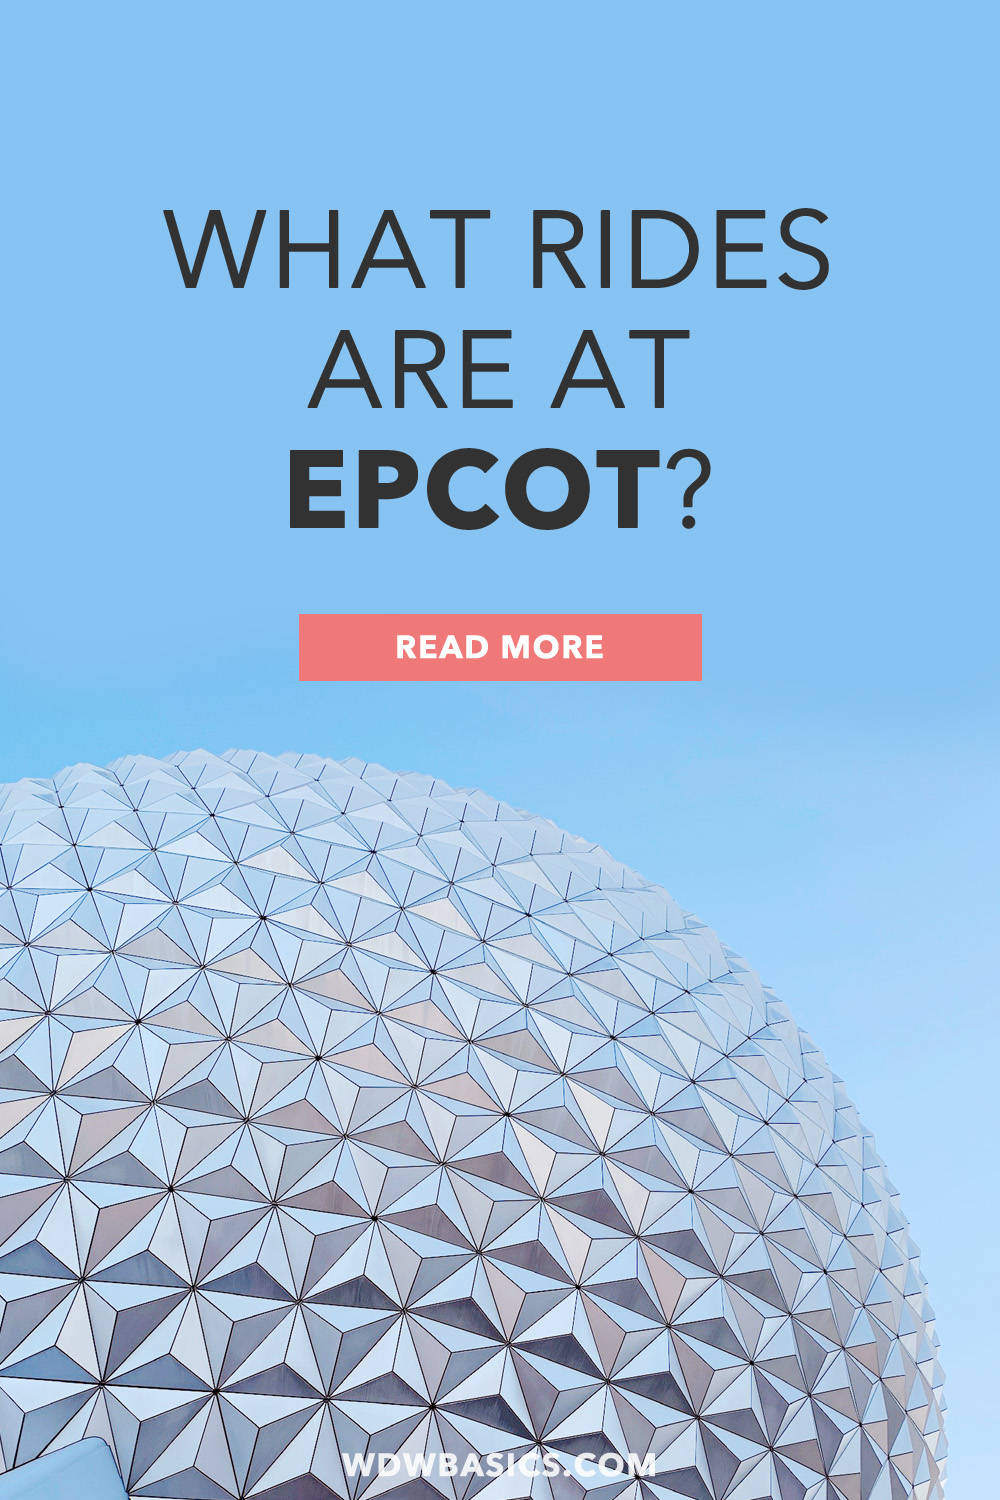 What rides are at Epcot?